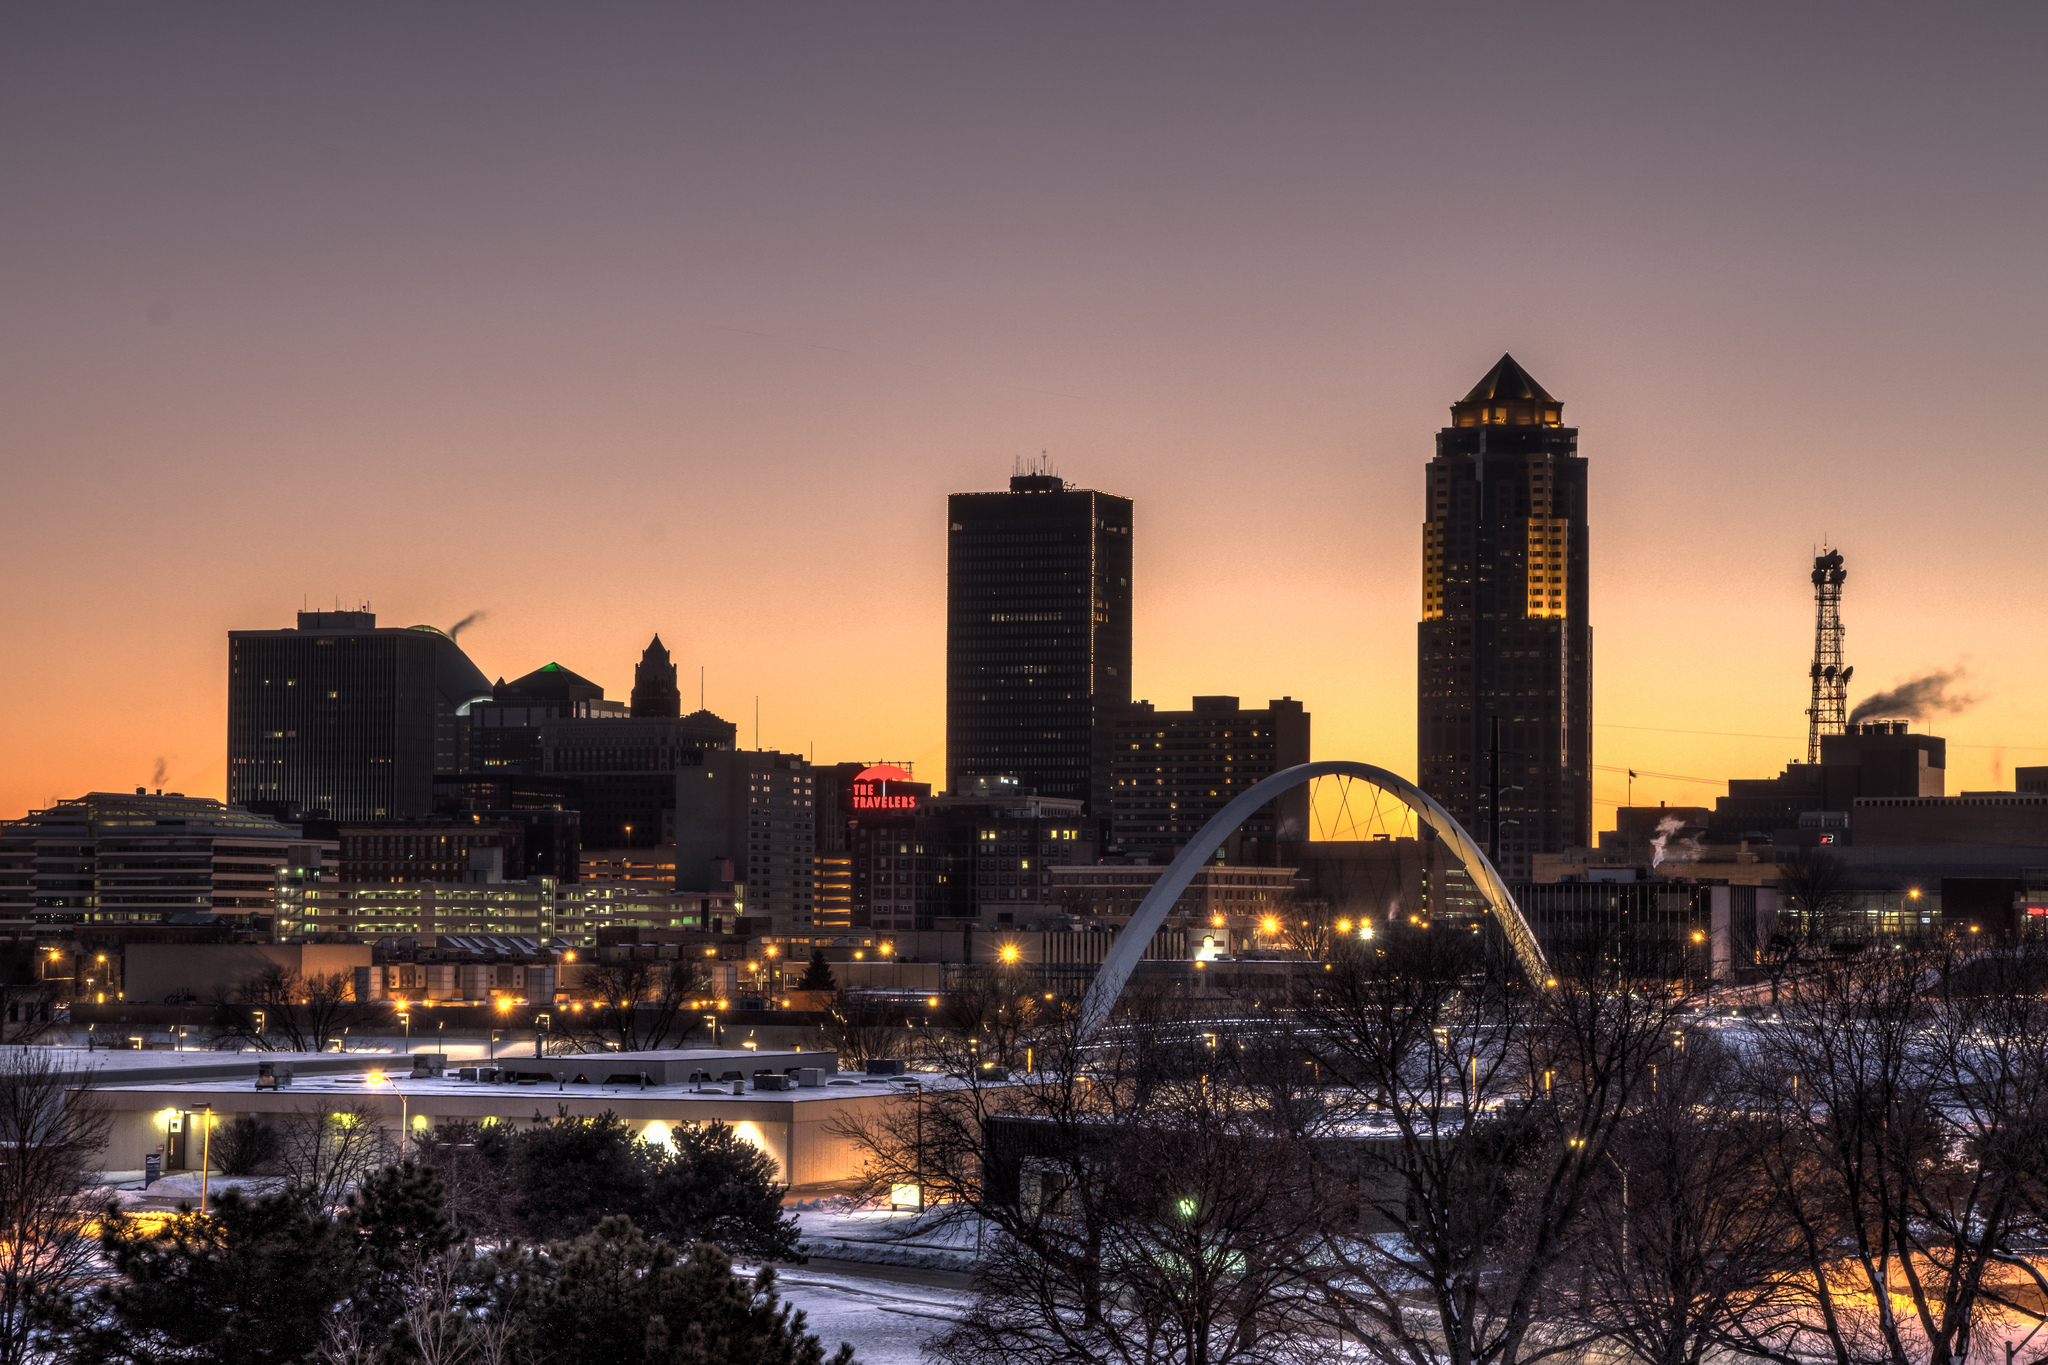 We are pumped to move to this beautiful city!